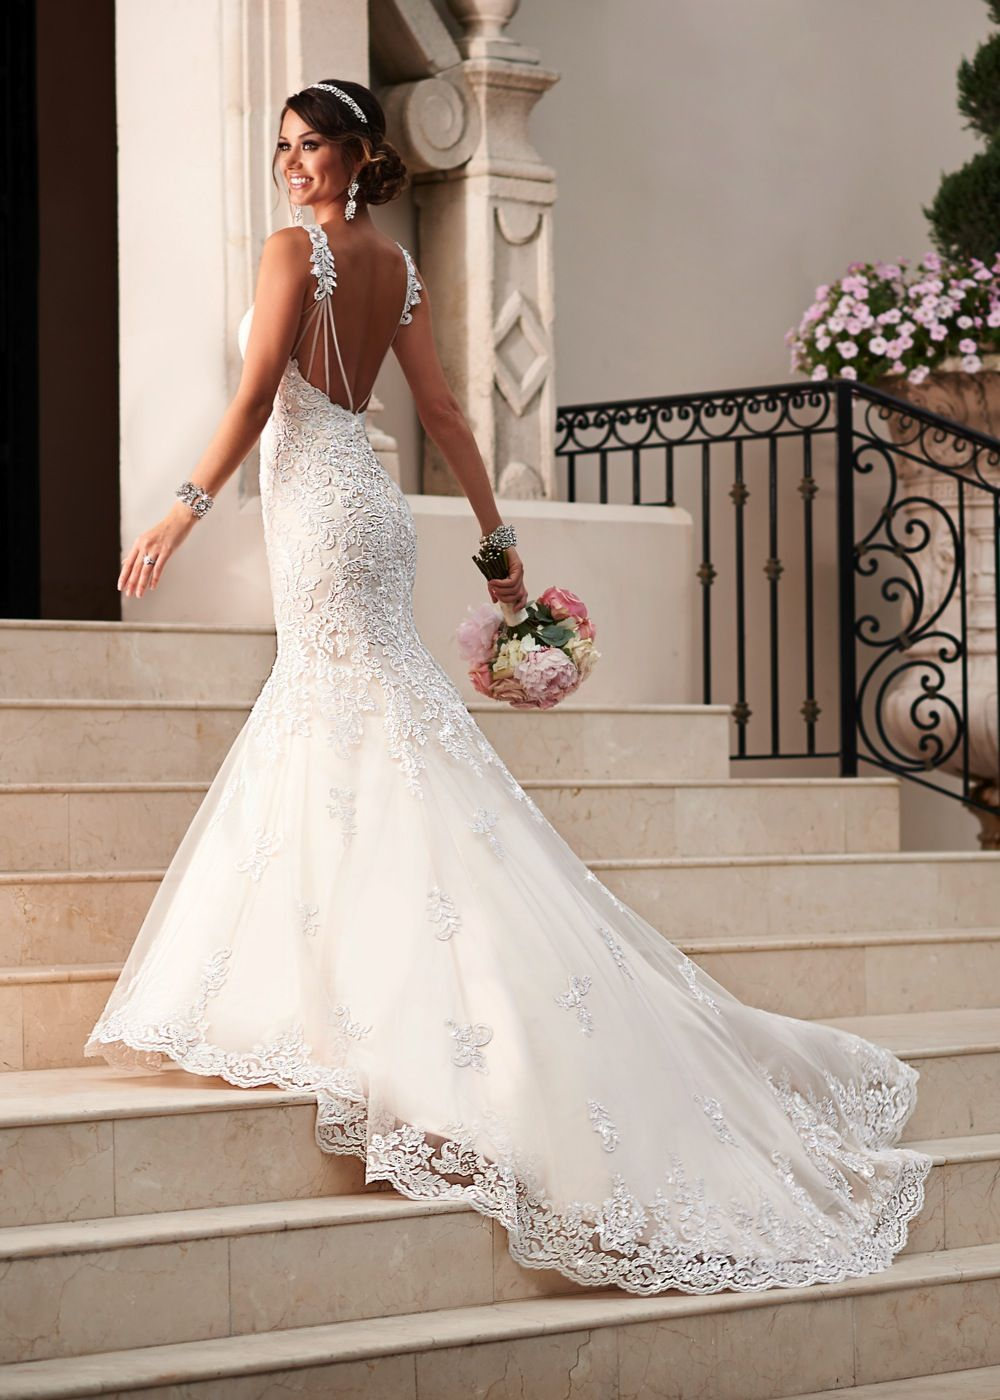 wedding dresses by stella york - Google Search | wedding dresses for ...